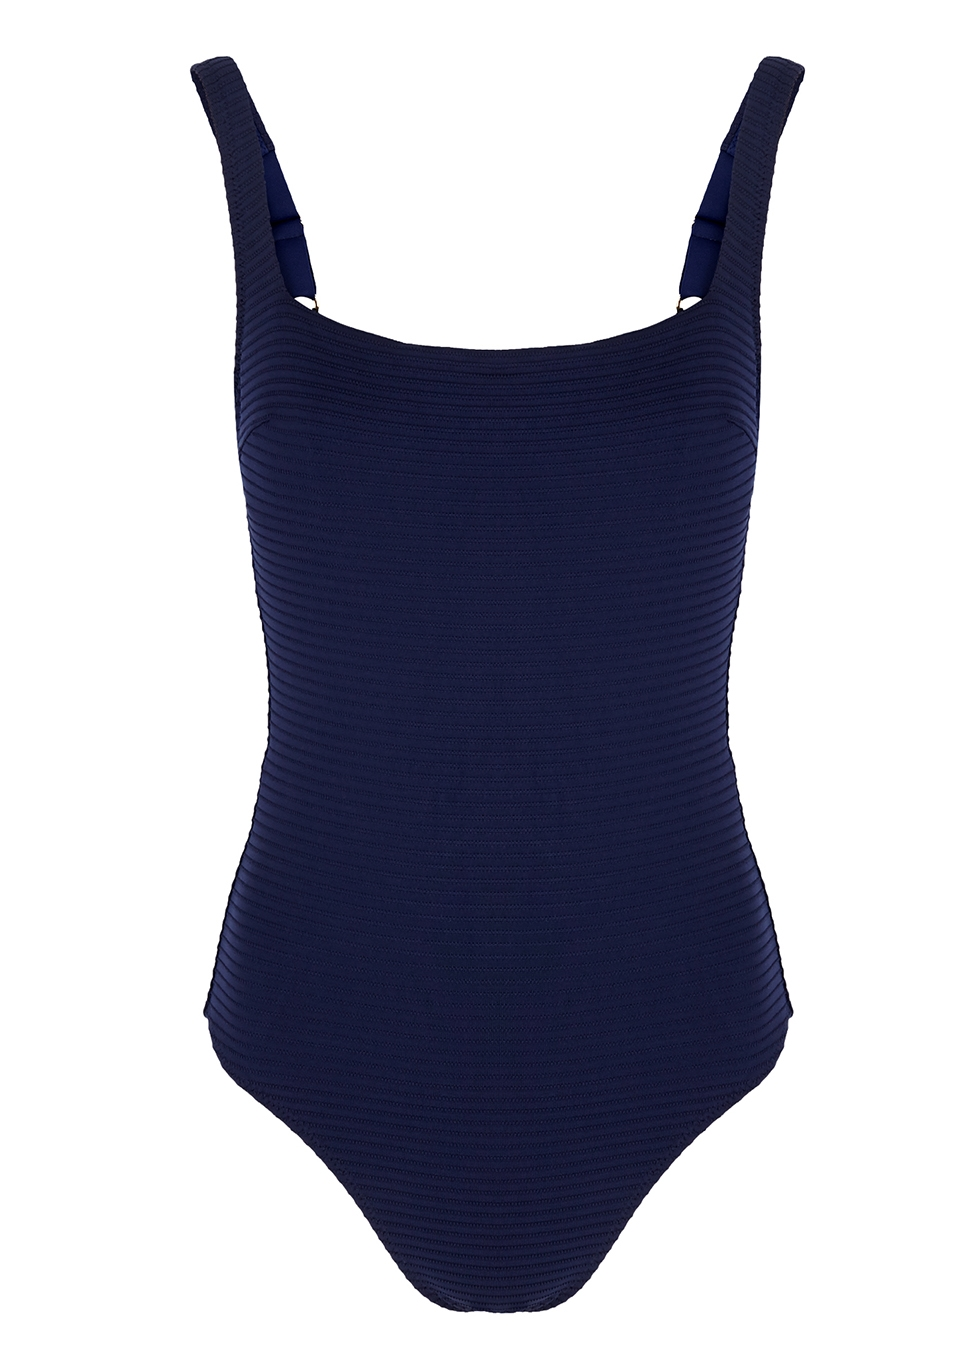 Navy ribbed lace-up swimsuit - heidi klein body